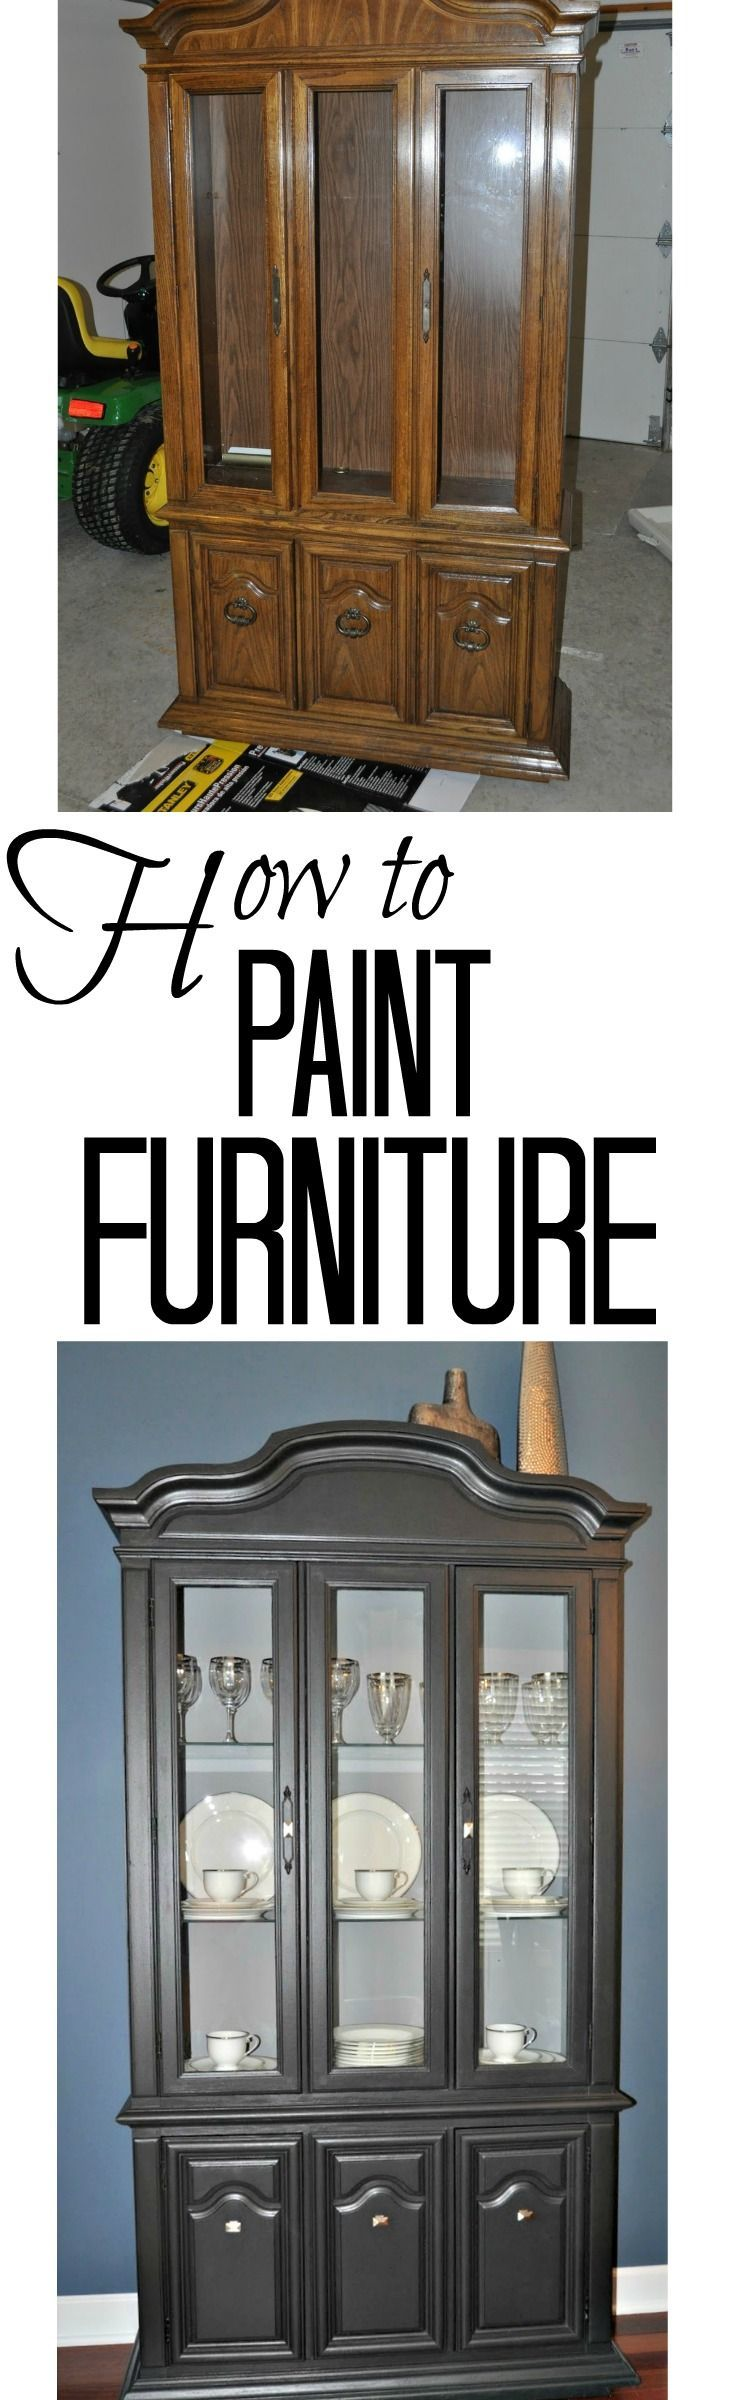 348 Best Images About Home Deco On Pinterest Home Design How To Paint And Western Homes